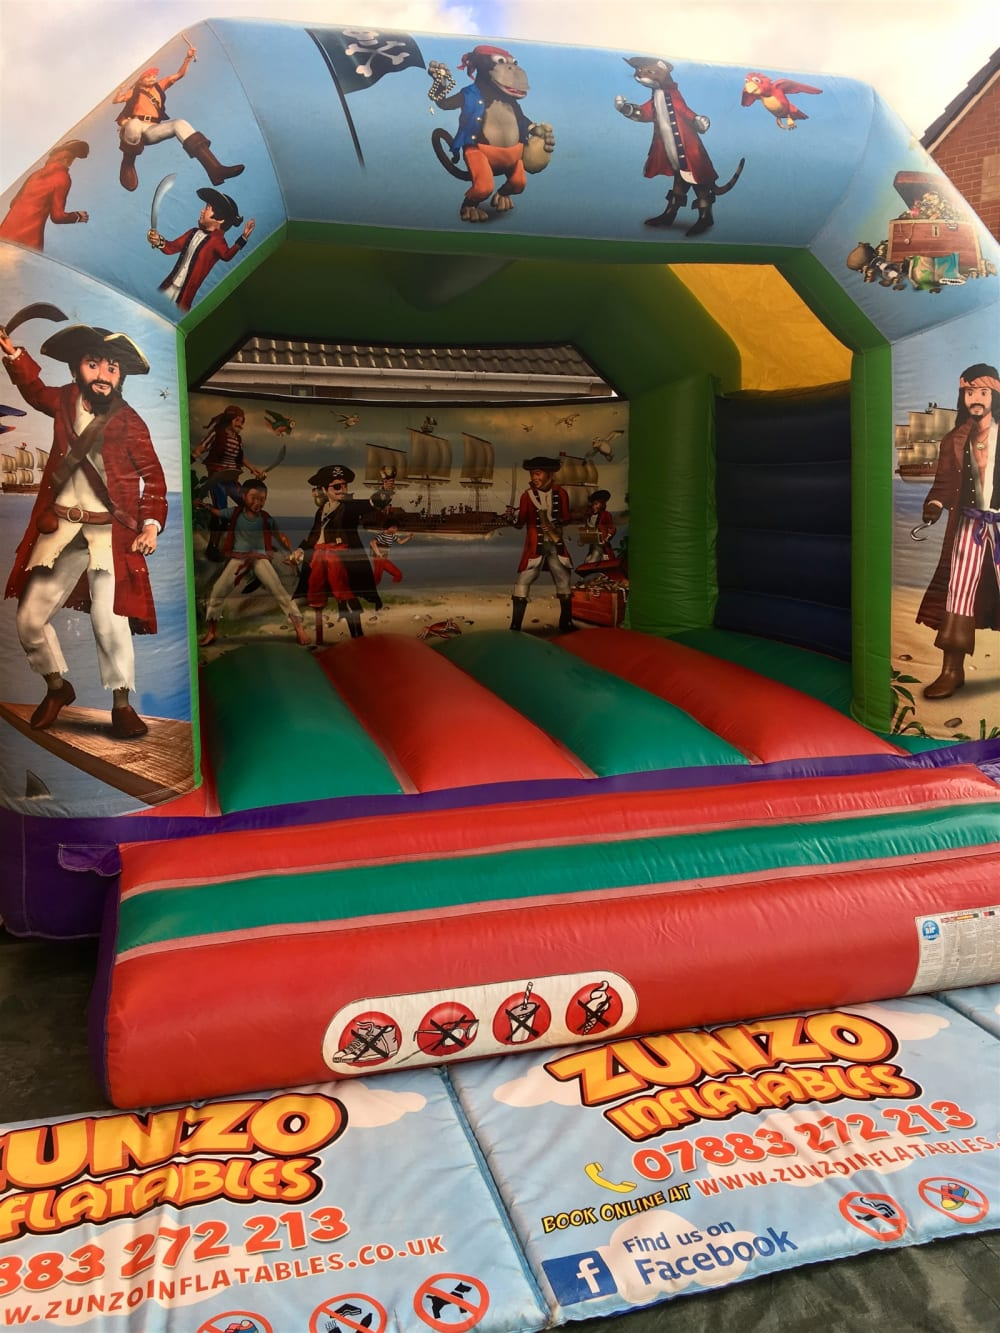 North East Bouncy Castle Hire, DJ Disco Hire in Hartlepool